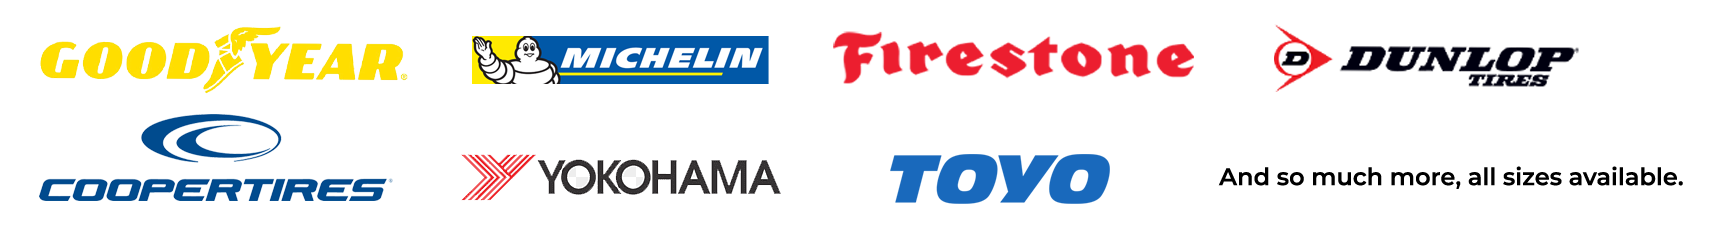 Car and Truck Tire Brands